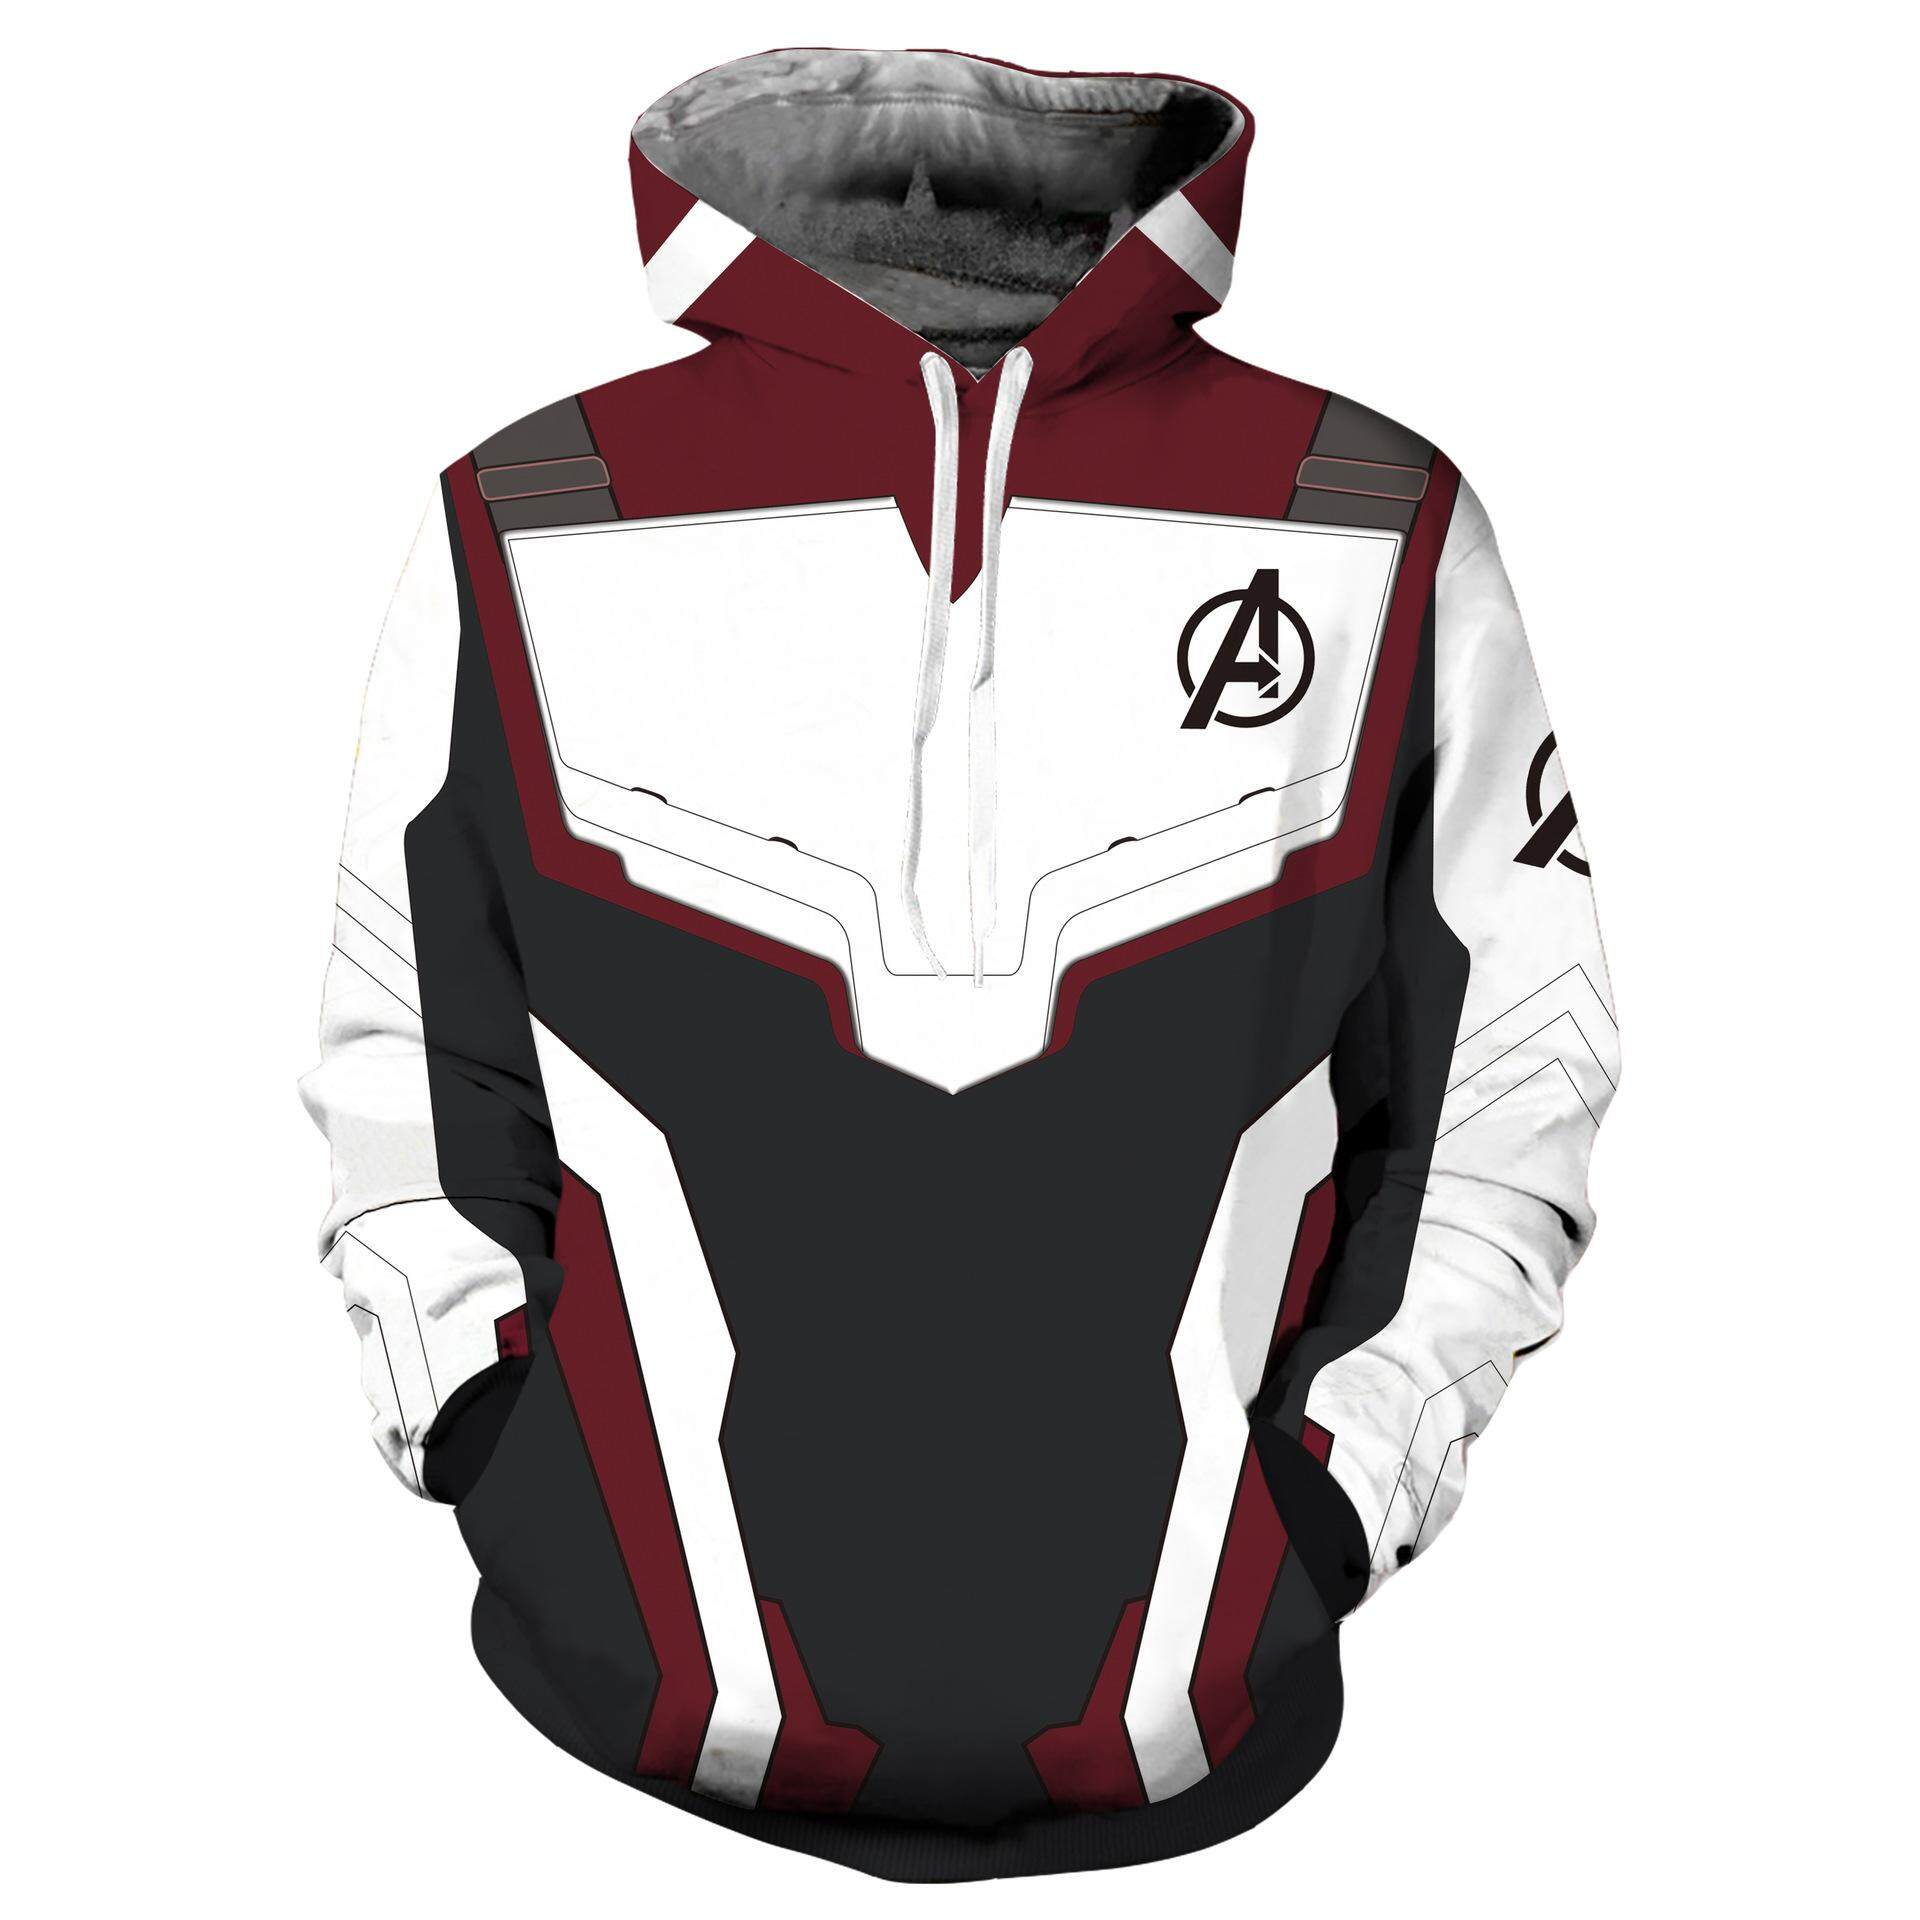 ca84b489 The Avengers 4 Endgame Quantum Realm Sweatshirt Jacket Advanced Tech  Superhero Iron Man Hoodies Suit